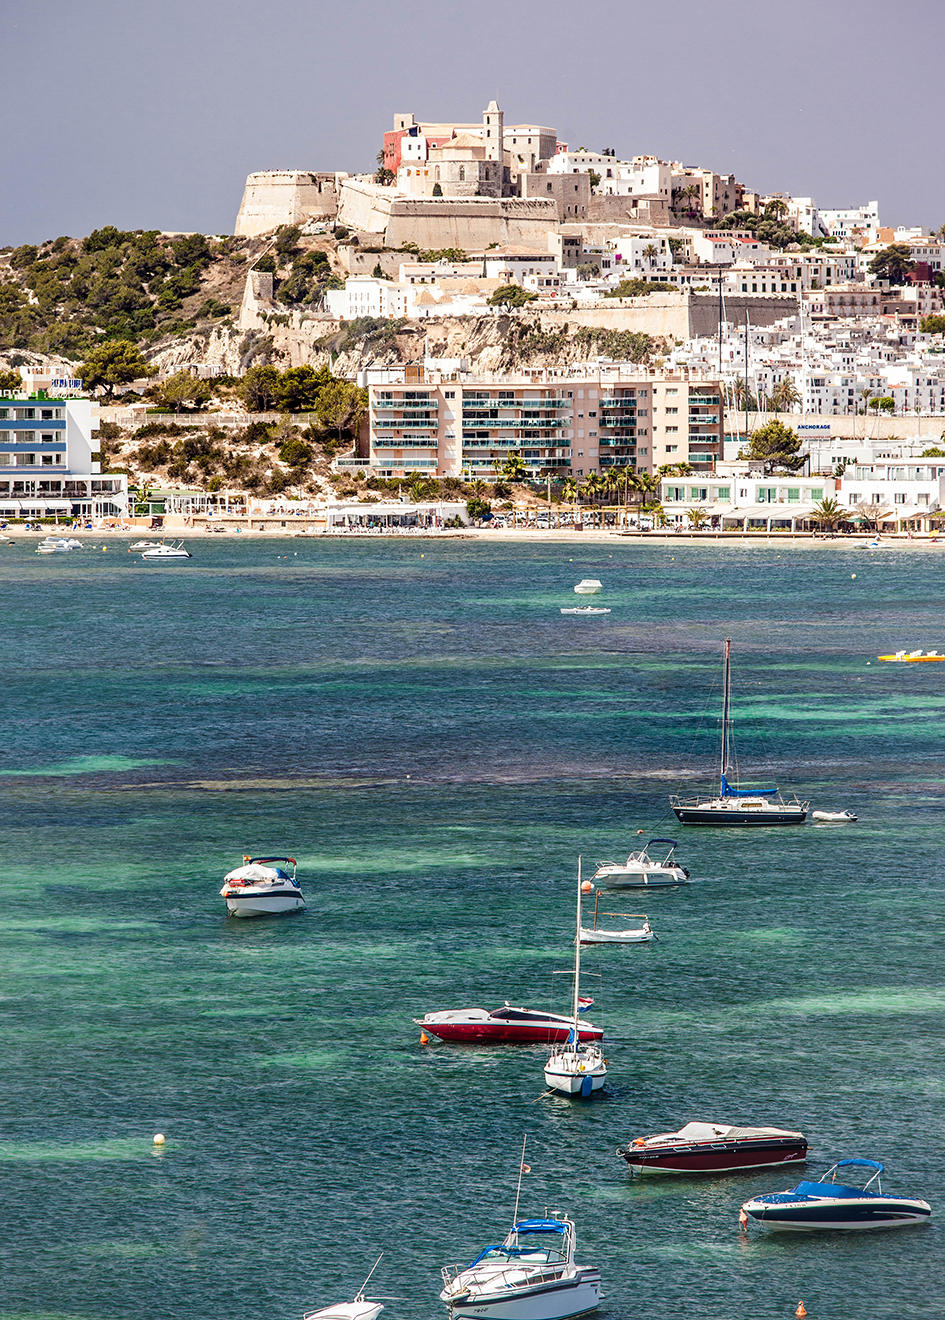 ibiza-remains-one-of-the-most-popular-superyacht-charter-destinations